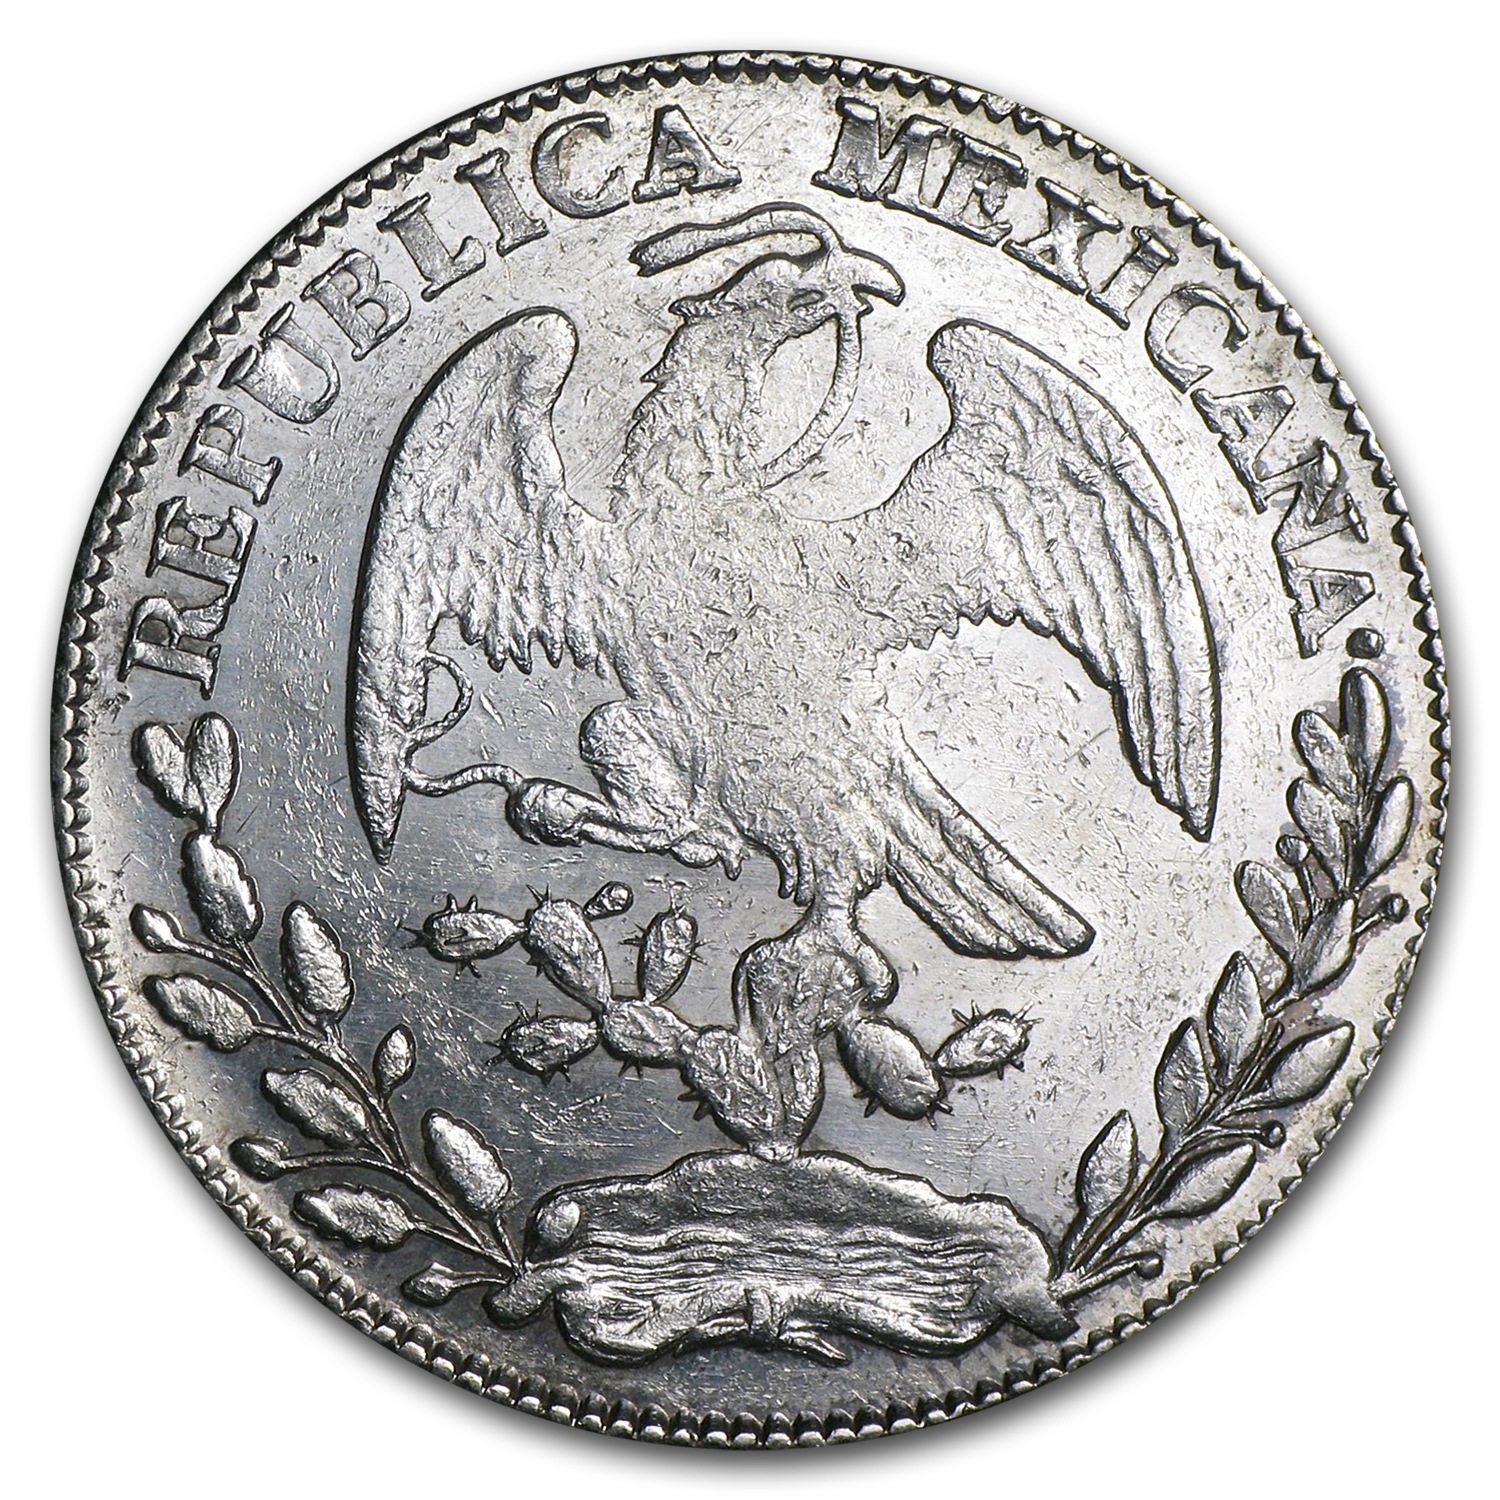 1864 Zs MO Mexico Silver 8 Reales AU Details (ASW .7859 oz)